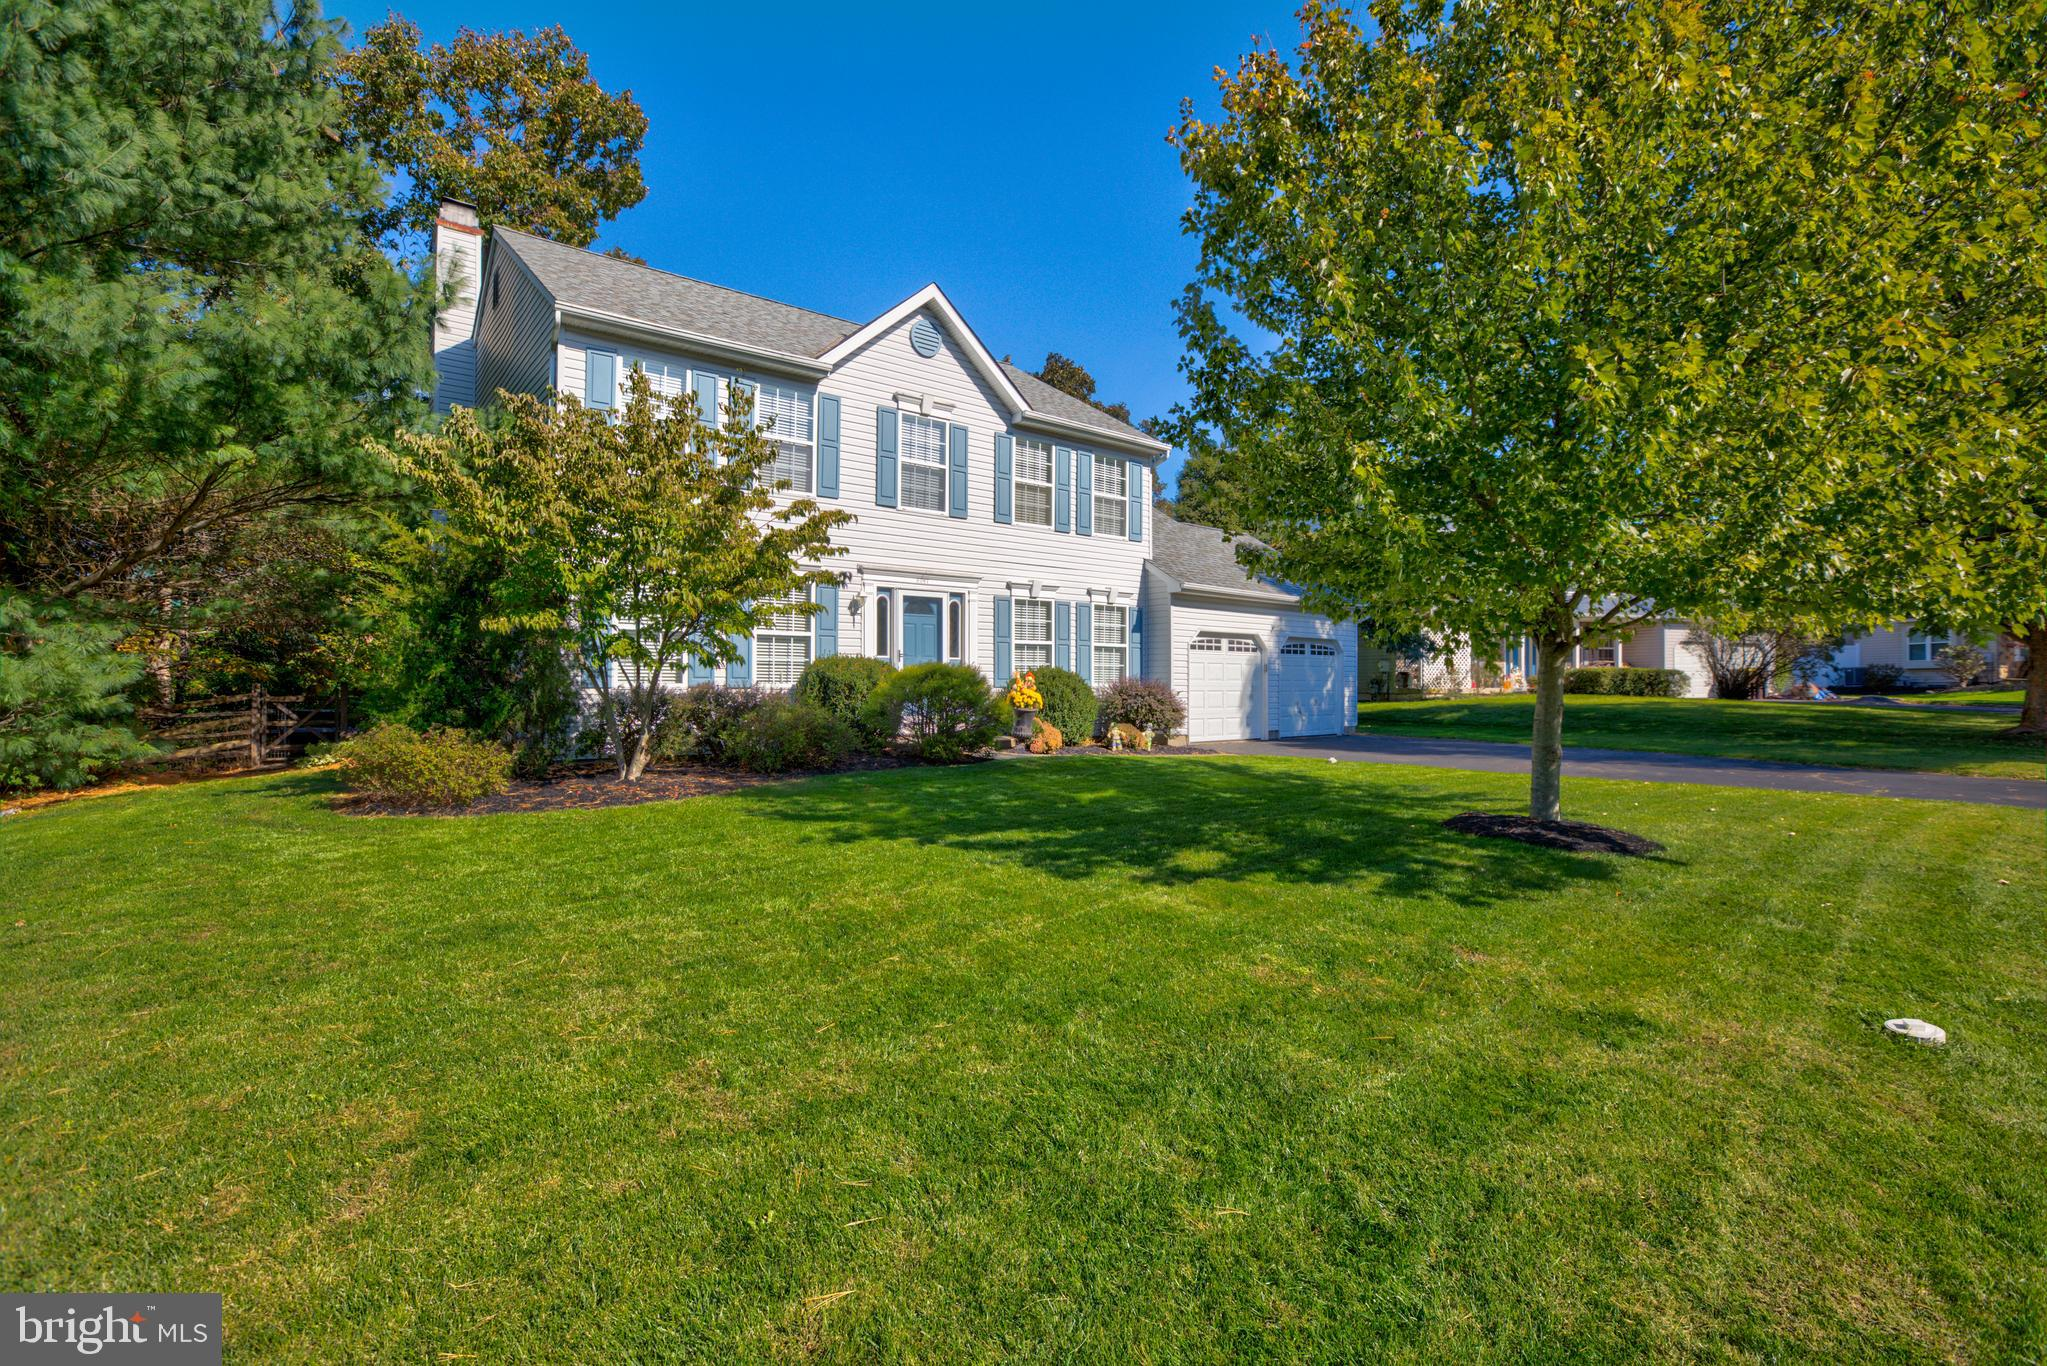 6097 High Meadow Drive, Pipersville, PA 18947